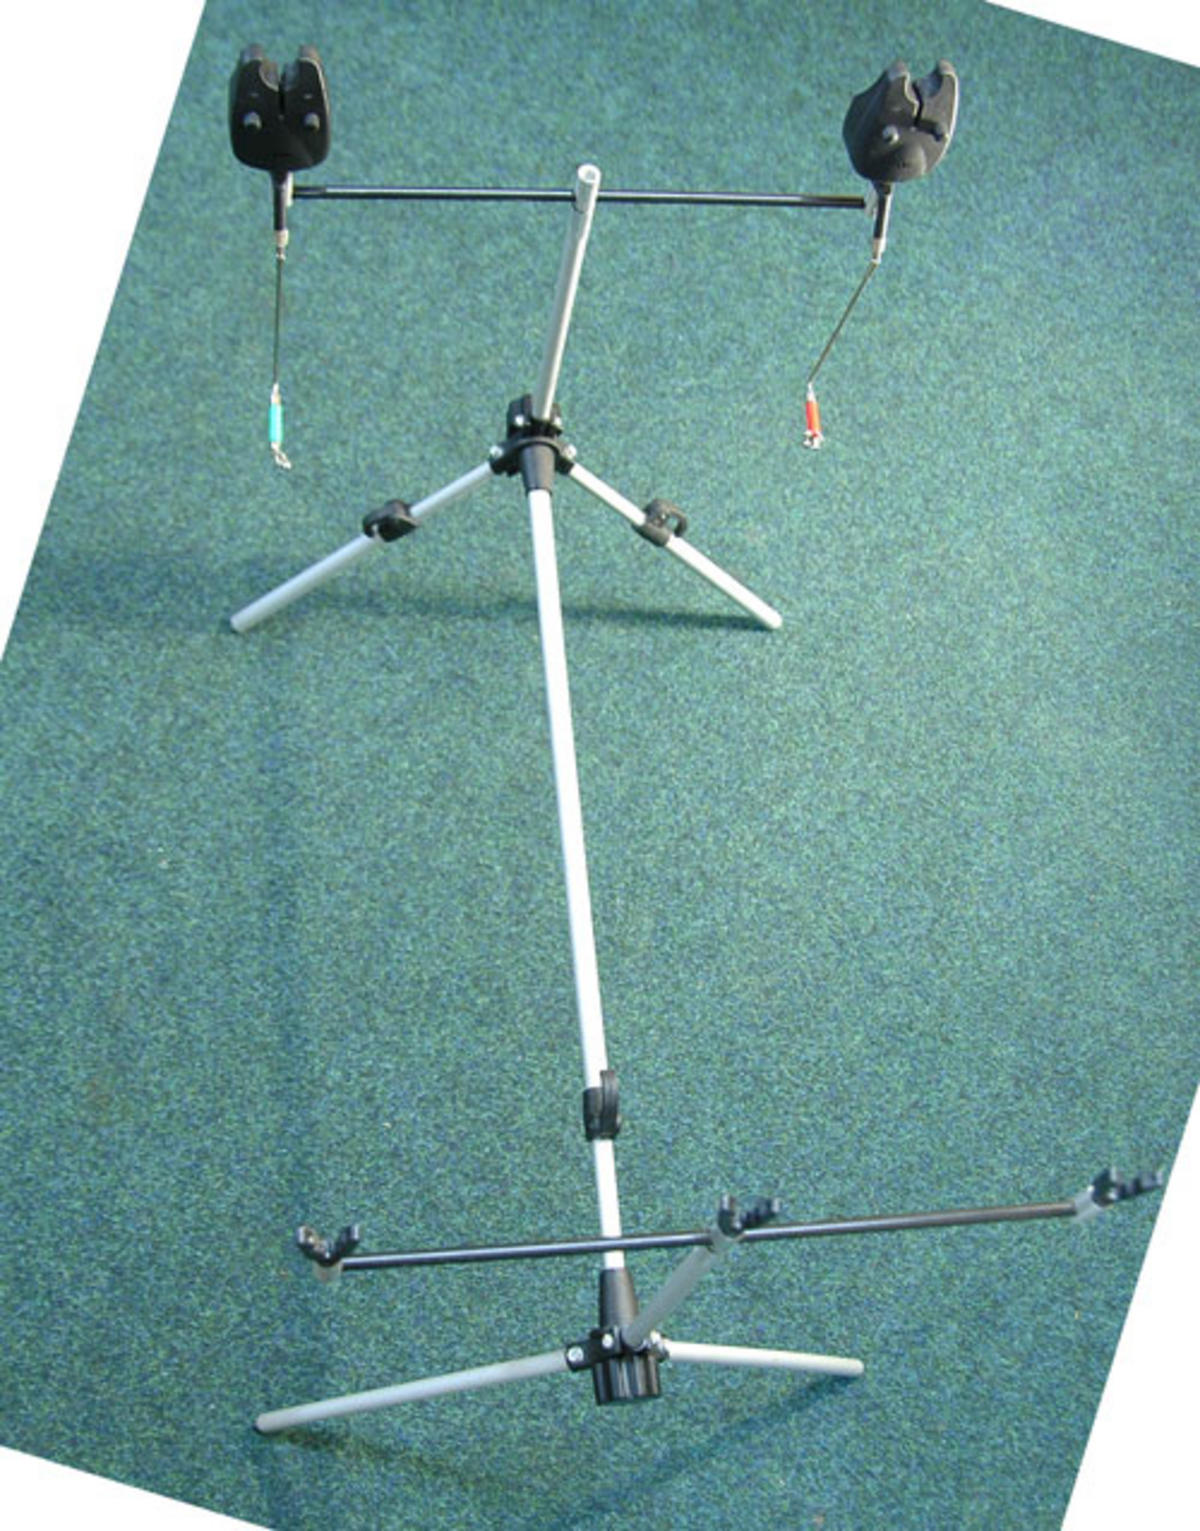 ALUMINIUM ROD POD COMPLETE WITH BUZZ BARS, ROD RESTS, 3 ALARMS & SWINGERS